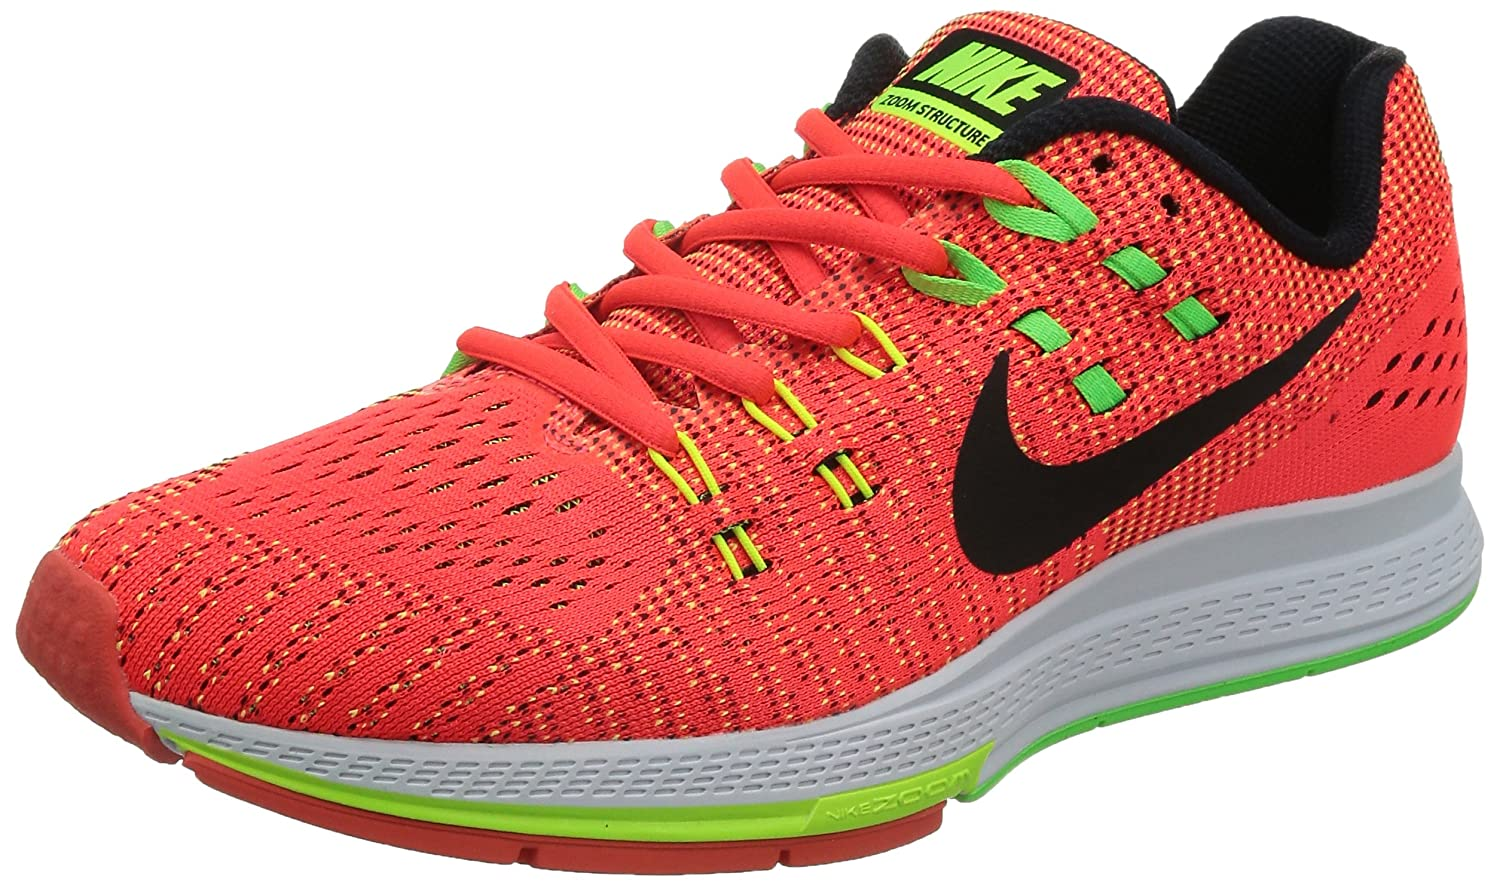 buy popular e18ec b7e2c Nike Men's Air Zoom Structure 19 Brght Crimson/Blk/Vlt/Vltg Grn Running  Shoe 11 Men US